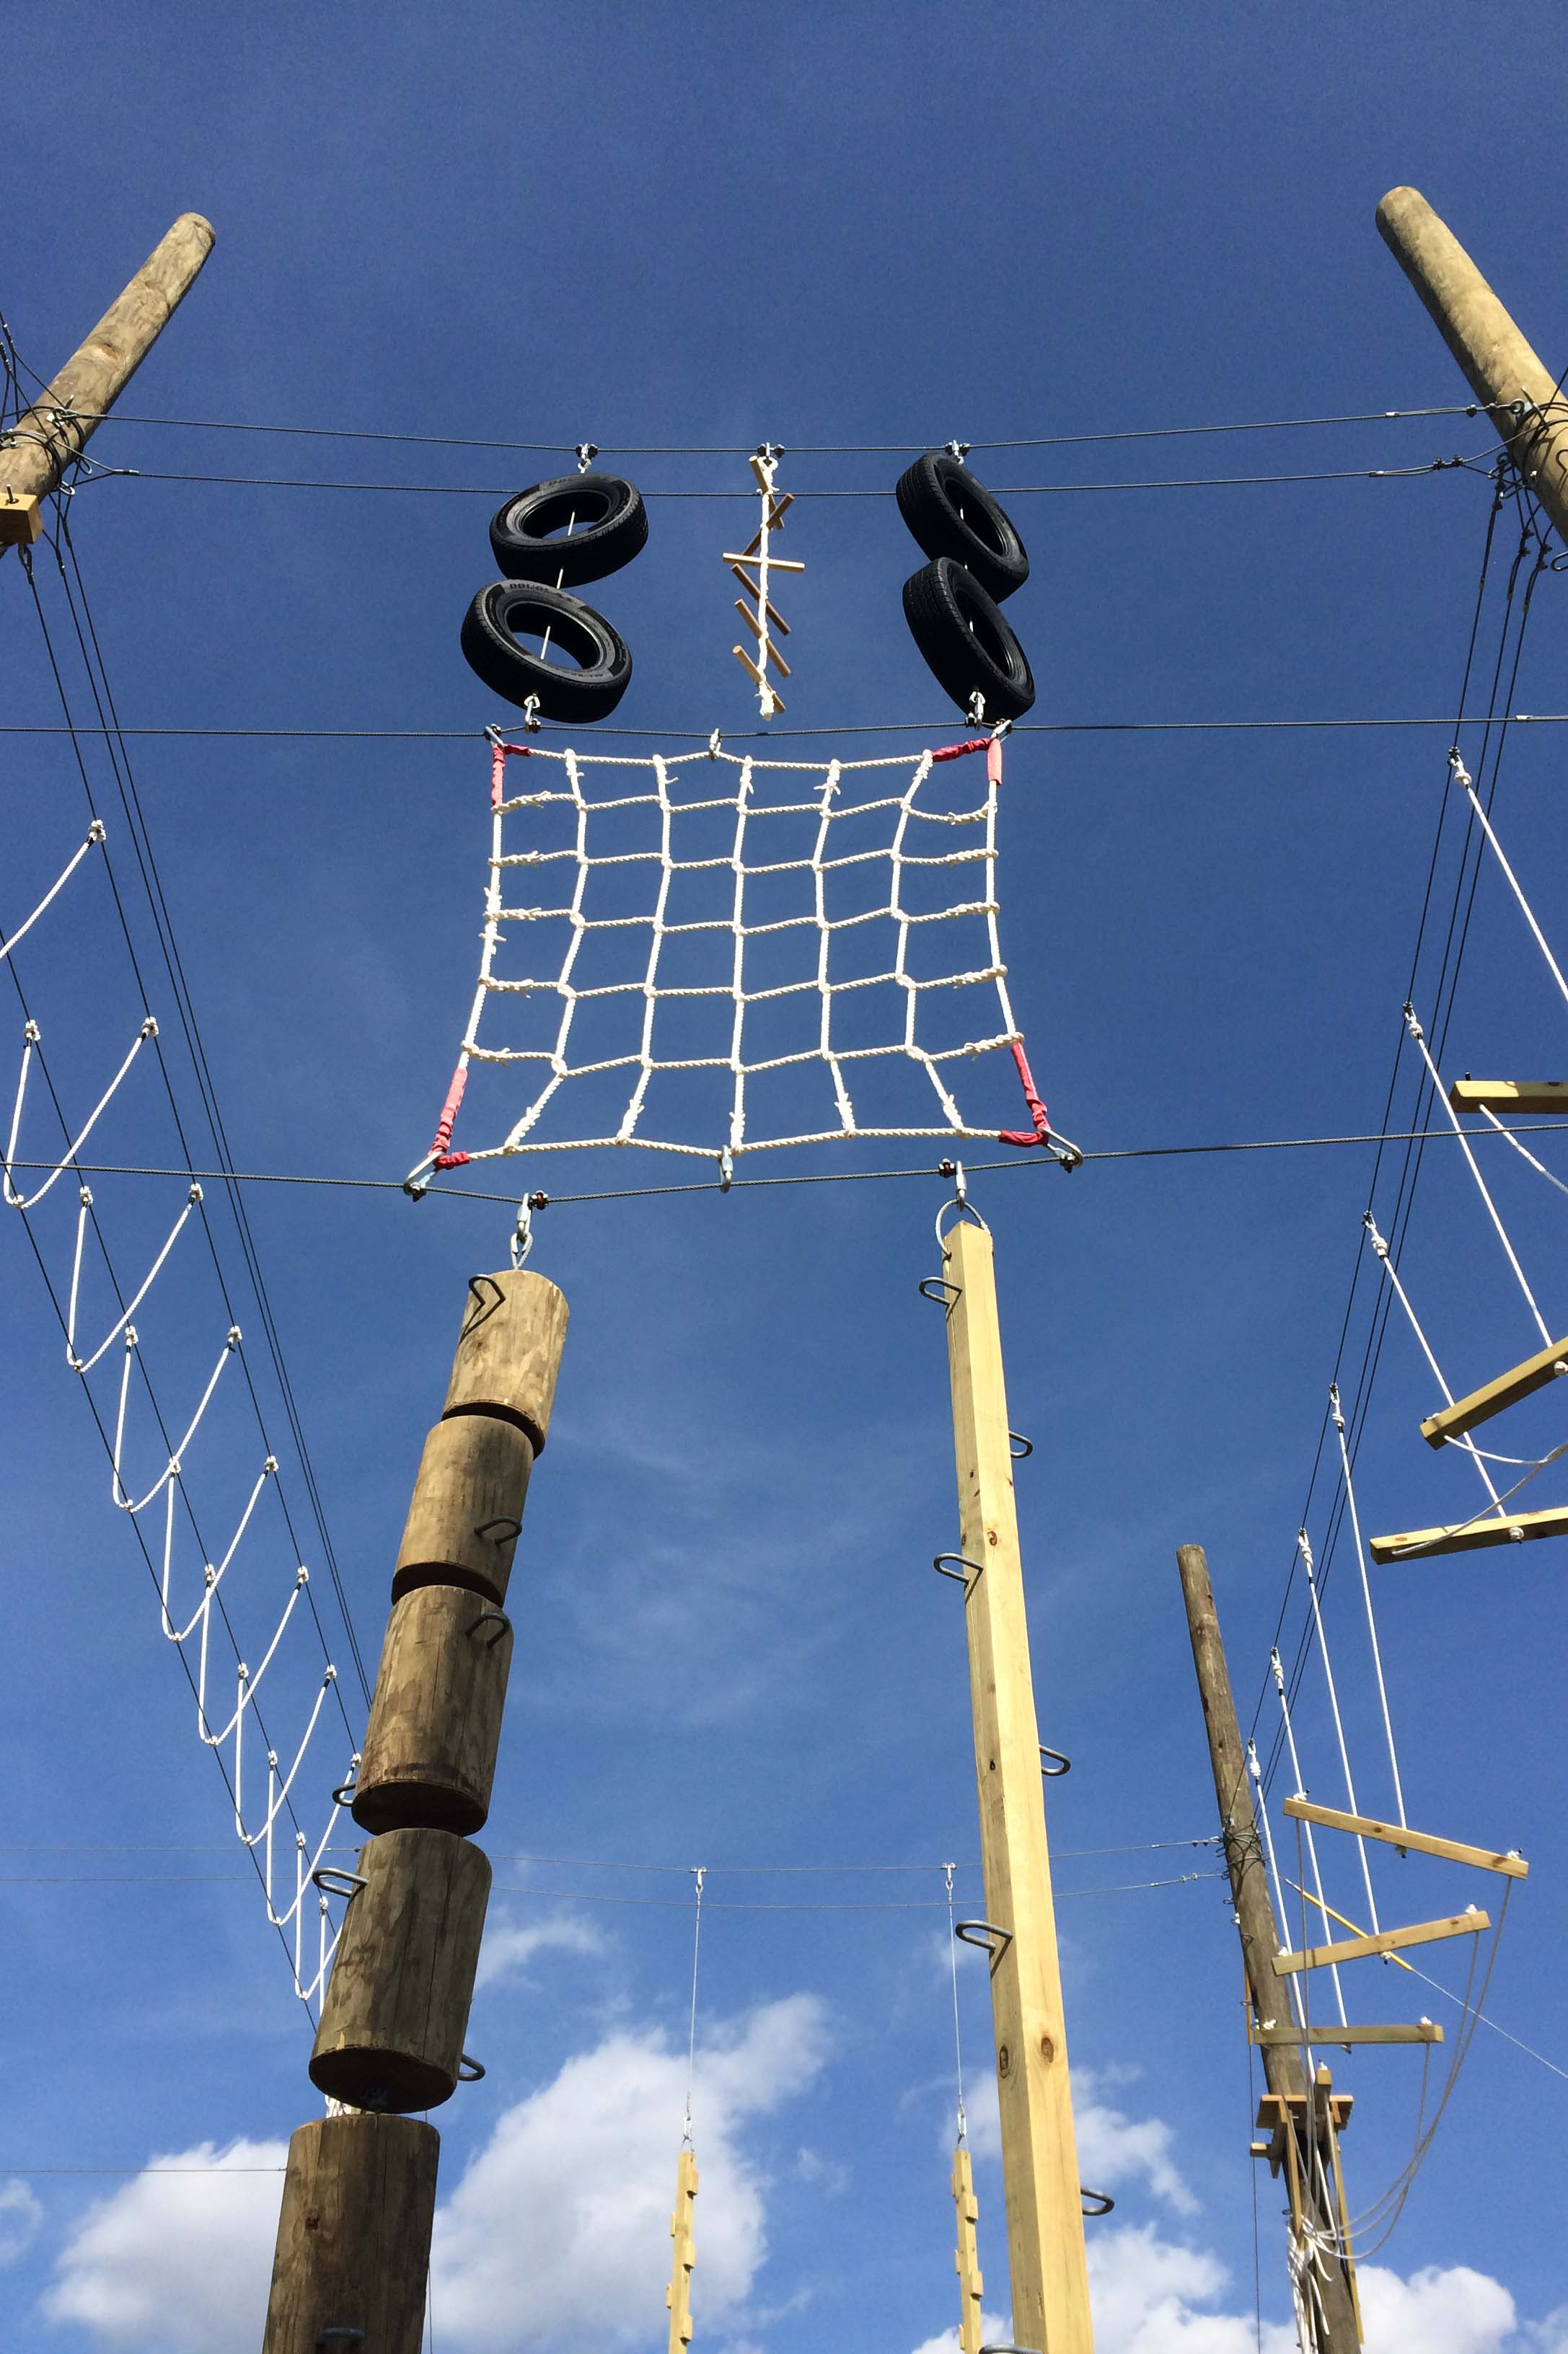 vertical playpen on high ropes course